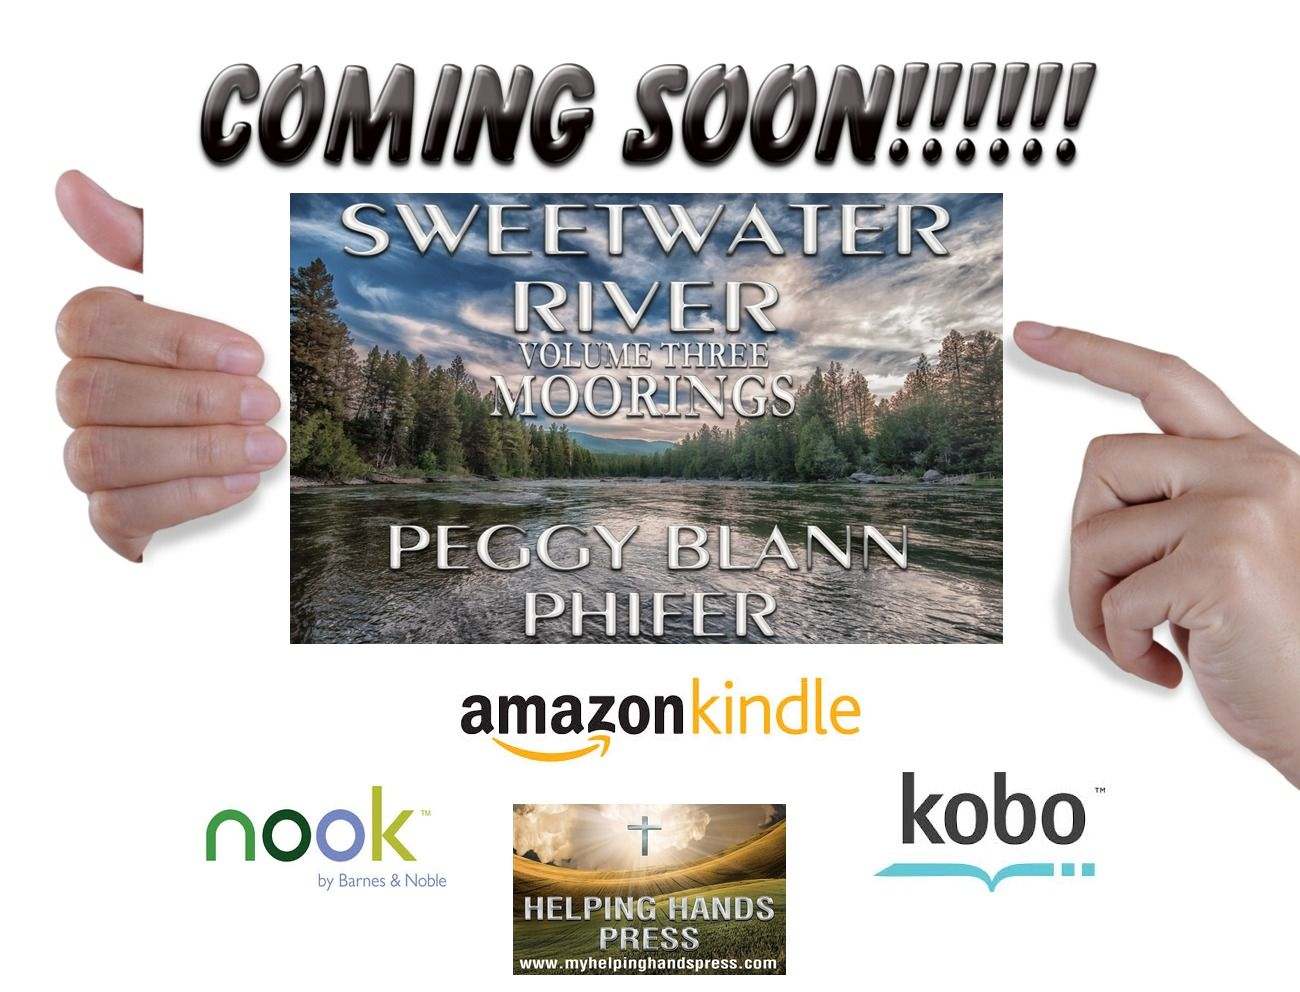 "Coming Soon! Peggy Blann Phifer@PegPhifer' ""Sweetwater River-V3-Moorings"" #ContemporaryRomance #Inspired #Adoption http://ow.ly/WIBYY"